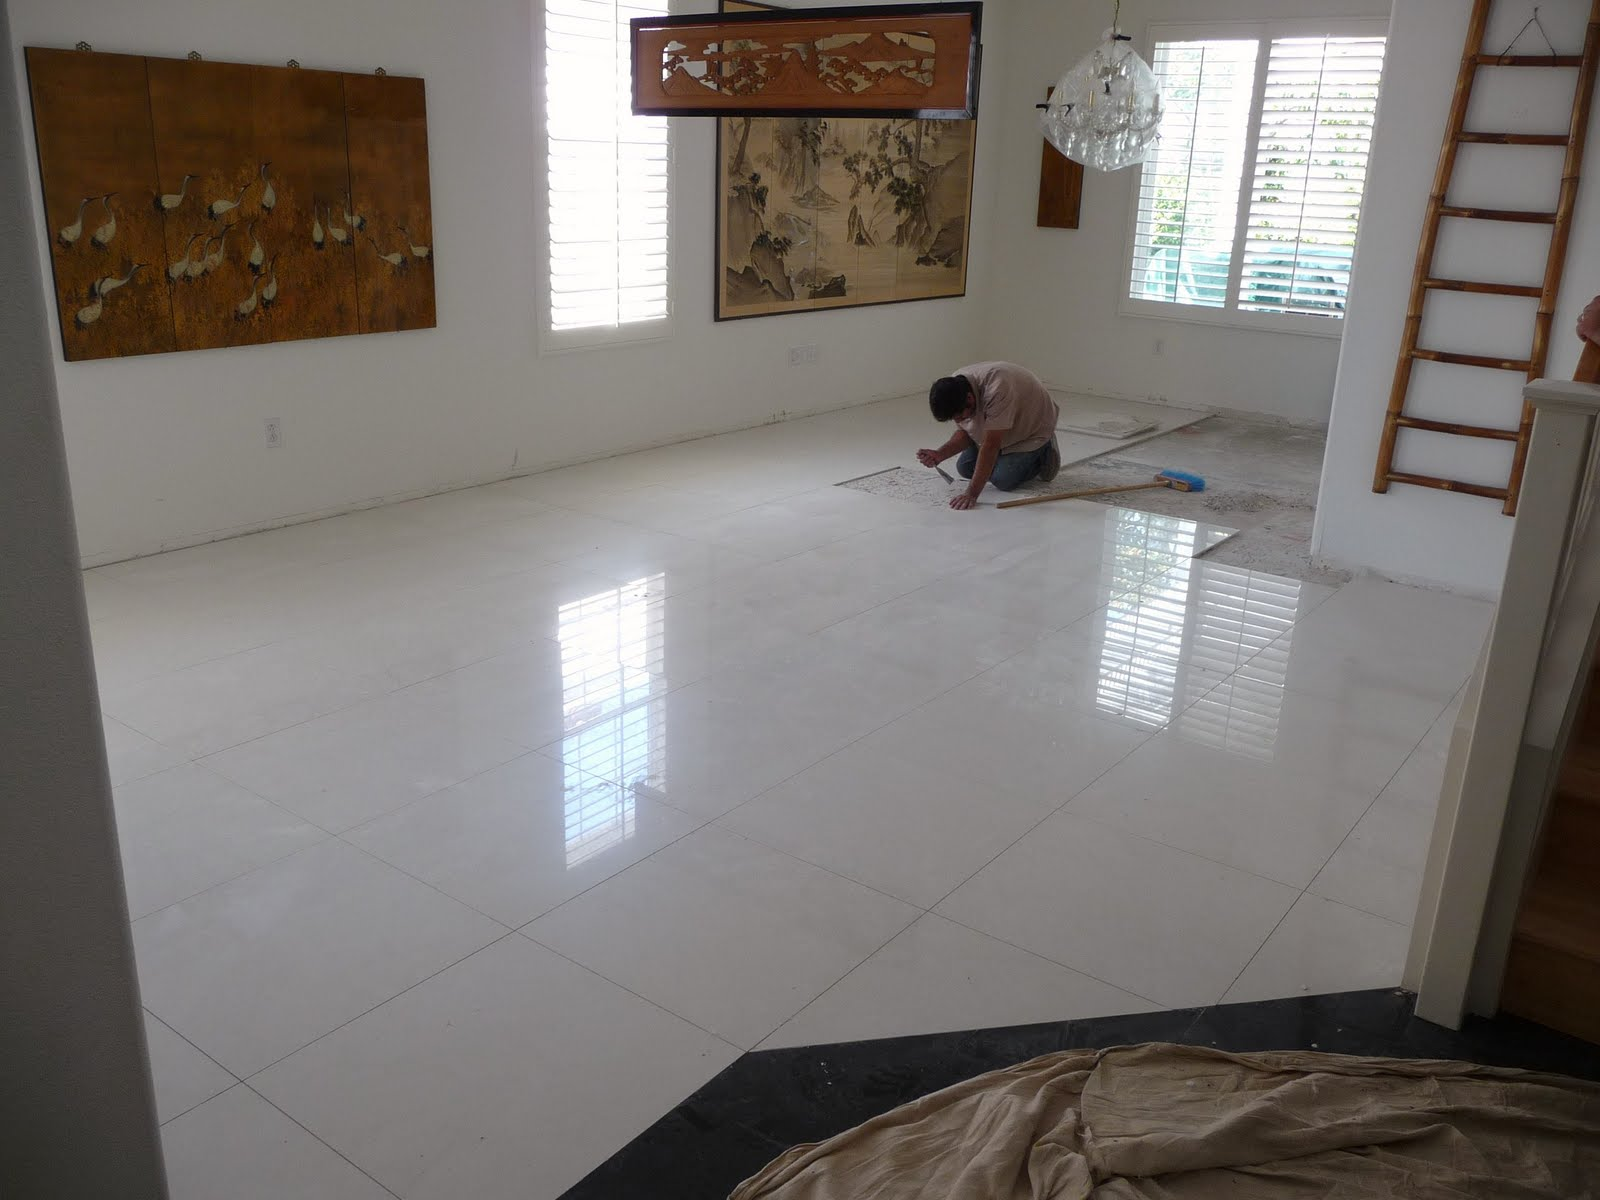 Installing white granite 2ft x 2ft tiles - living and dinning rooms